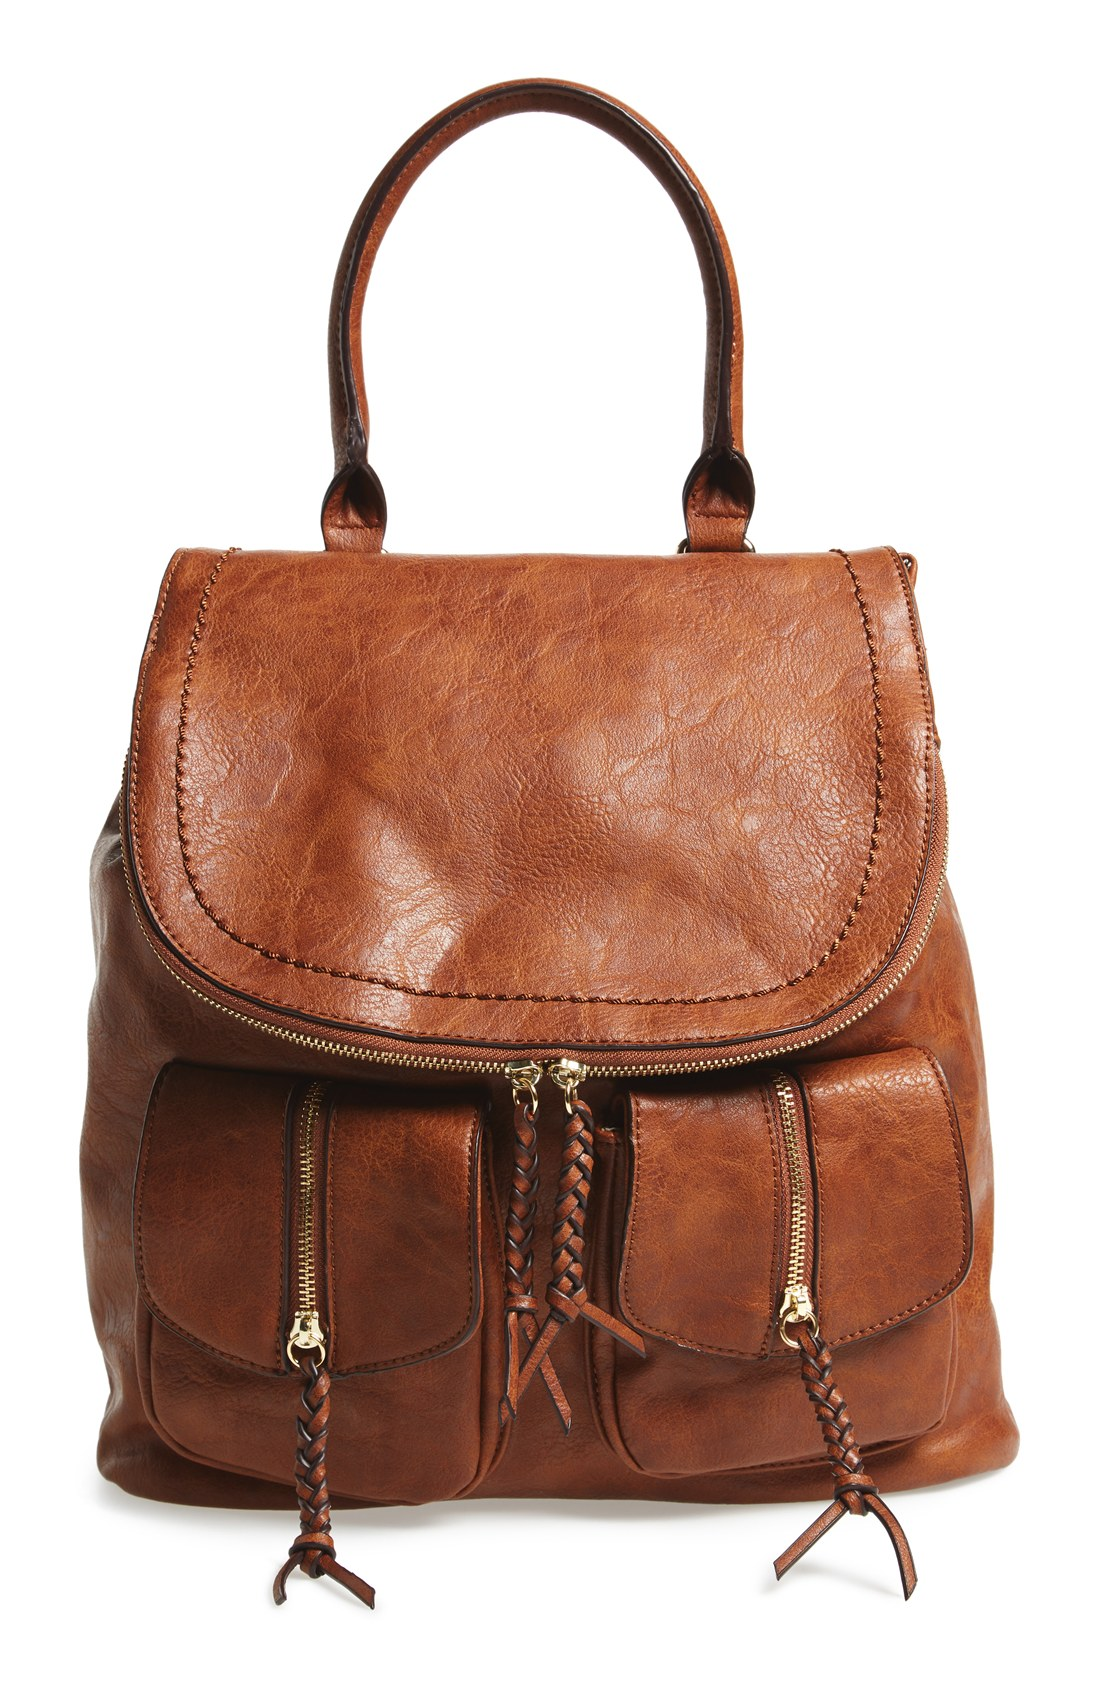 Brown Leather Backpack Purse aik9j0Kd